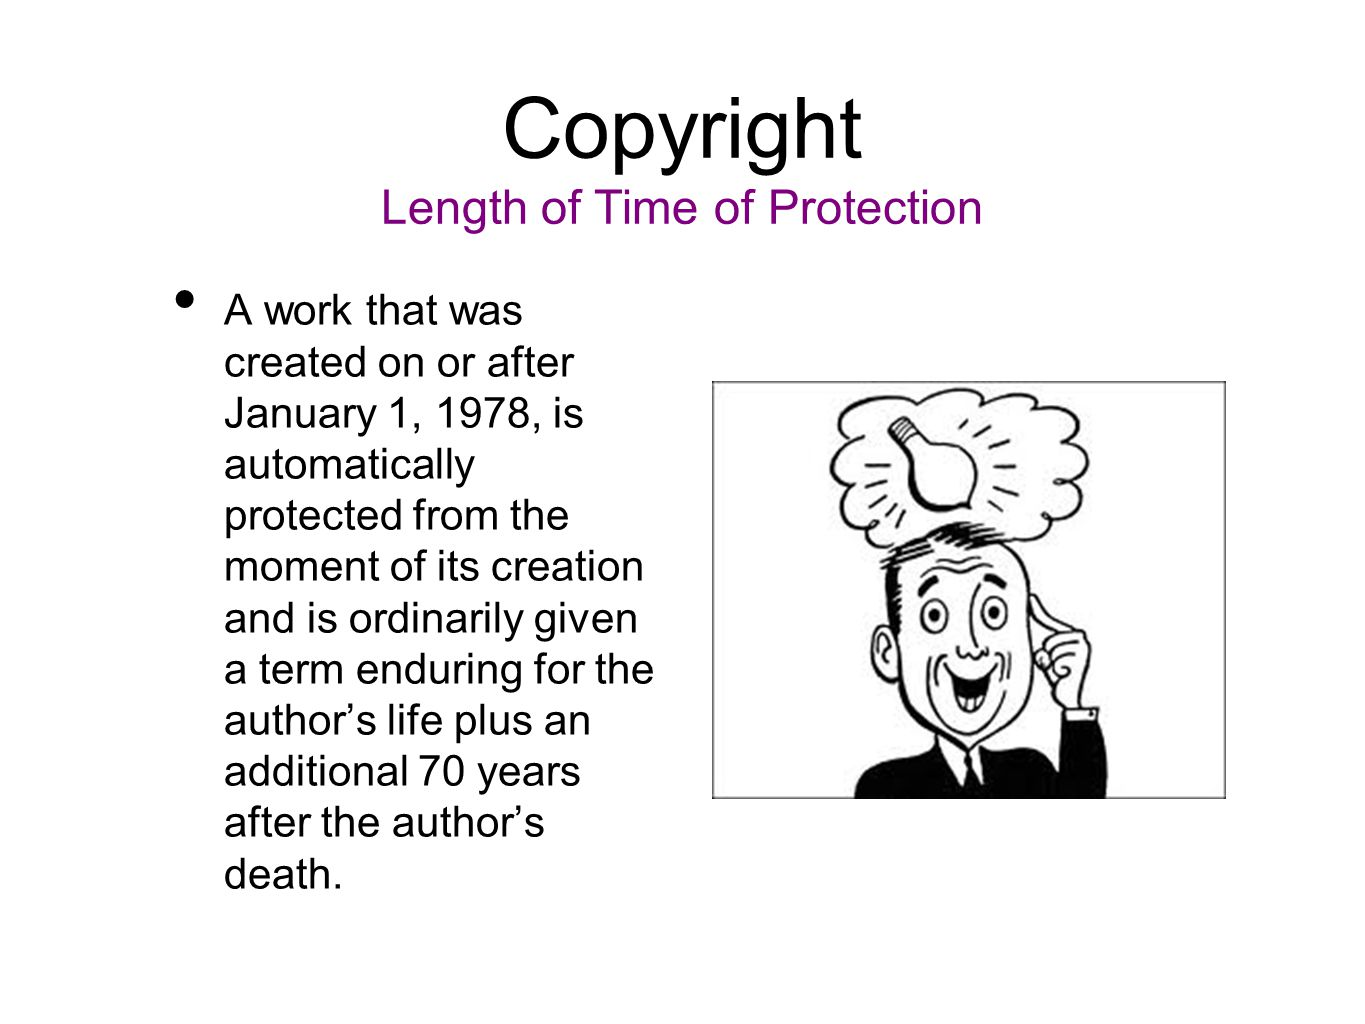 Copyright Length of Time of Protection A work that was created on or after January 1, 1978, is automatically protected from the moment of its creation